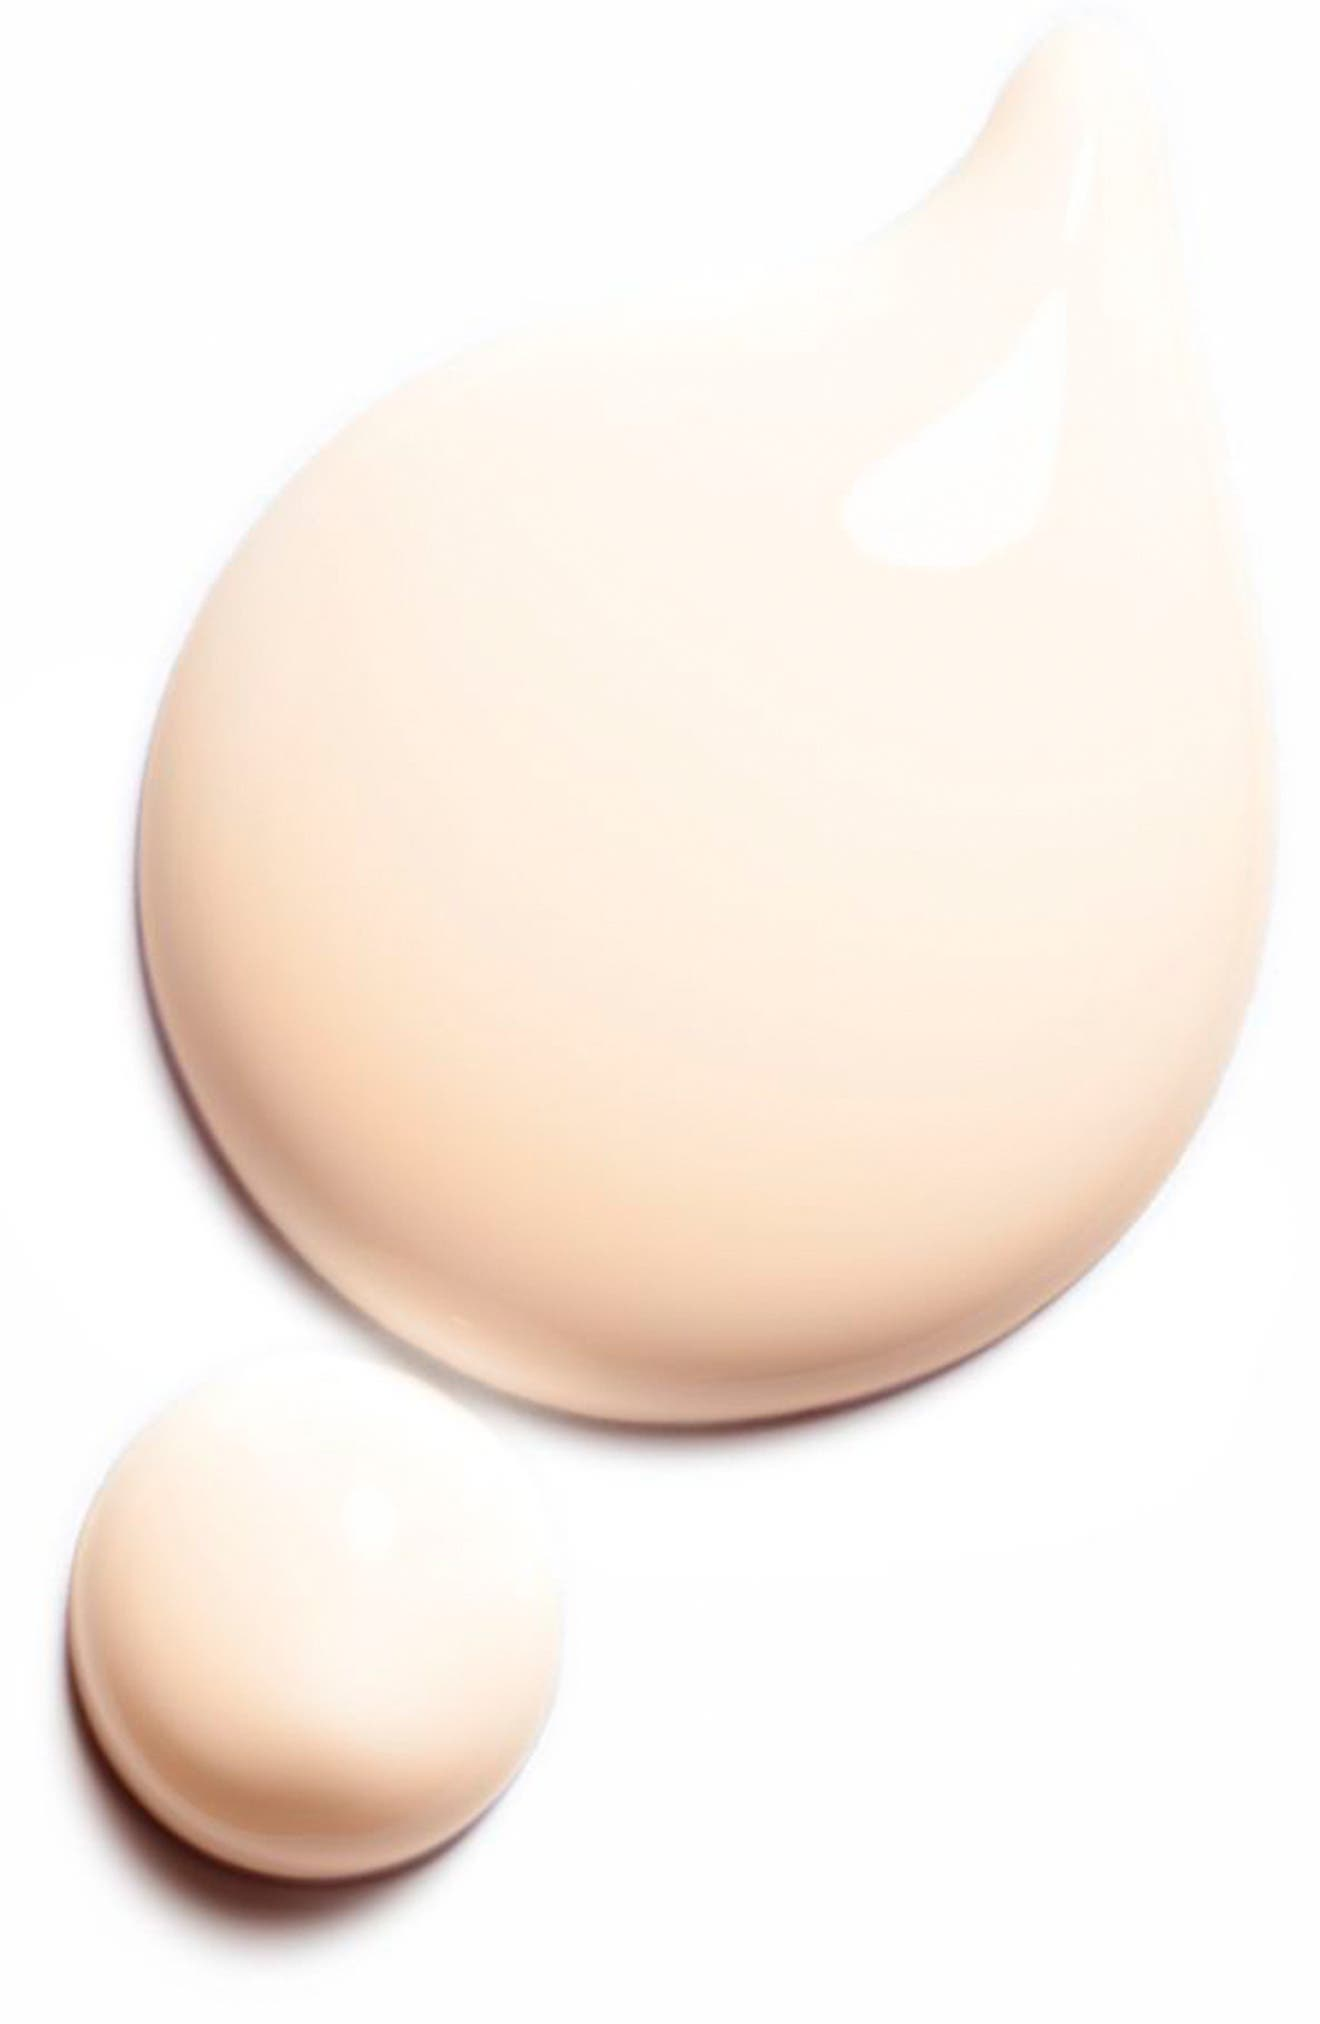 CHANEL, COCO<br />Moisturizing Body Lotion, Alternate thumbnail 3, color, NO COLOR